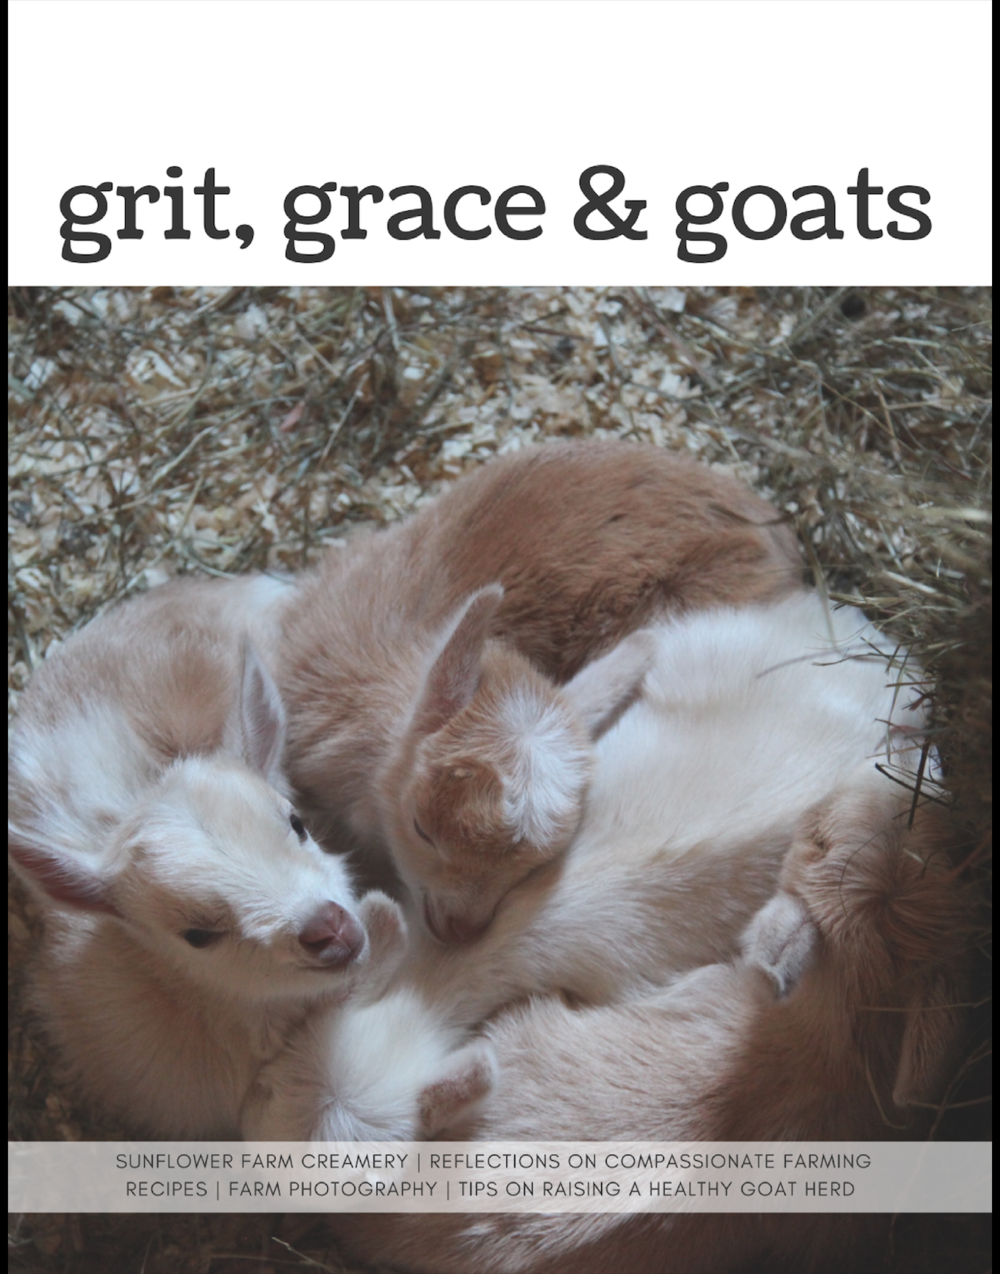 ORDER ON AMAZON HERE!  Grit, Grace & Goats opens an intimate window into life on a Nigerian Dwarf goat farm in Maine. Mini memoirs allow readers to step into a day at the farm and come away with a new perspective on life. Even city folks will find experiences that translate to paths to feeling more human. The delightful collection also includes the creamery's delicious recipes for goat milk chèvre, feta, yogurt, cajeta, caramels and fudge. This issue is full of heart melting photos taken by the author Hope Hall and also showcases photographer Catherine Frost, who shot stunning portraits of each member of Sunflower Farm's goat herd. Grit, Grace & Goats is the perfect gift for anyone who loves goats and wants to learn more about local, humane farming. It includes nitty-gritty tips that will help if you plan to make the leap into tending your own herd and plenty of big-picture thinking to remind you why you dream of small farming! The book even includes instructions for making a 3D felted goat sculpture and a knitting pattern for making a goat sweater for those who are looking for goat inspired crafting ideas.   Part 2 of the collection, due out August 2018, will include exciting coverage of the ups and downs of kidding season. 50 Nigerian Dwarf goat kids are expected to arrive over two weeks in April! You can also look forward to lots of tasty recipes highlighting goat milk products, a story about goat yoga, a design plan for building a low waste hay feeder, tips on building a licensed cheese kitchen, advice for when kidding does not go like clockwork and more goaty goodness. Unable to wait for the next collection to be published? Check out the Sunflower Farm YouTube channel and live barn cam or even better, head to Maine for a visit! You can visit our farm website at www.sunflowerfarm.info  Published March 2018 - Sunflower Farm Creamery - Cumberland, Maine - 68 pages full color - available in print and on Kindle as a download - All proceeds go to taking care of the goat herd on our No Cull Farm.  Thanks so much for ordering. A few dollars from each order of the print softcover or Kindle copies directly support the farm's expenses and allow us to continue our No Cull approach.